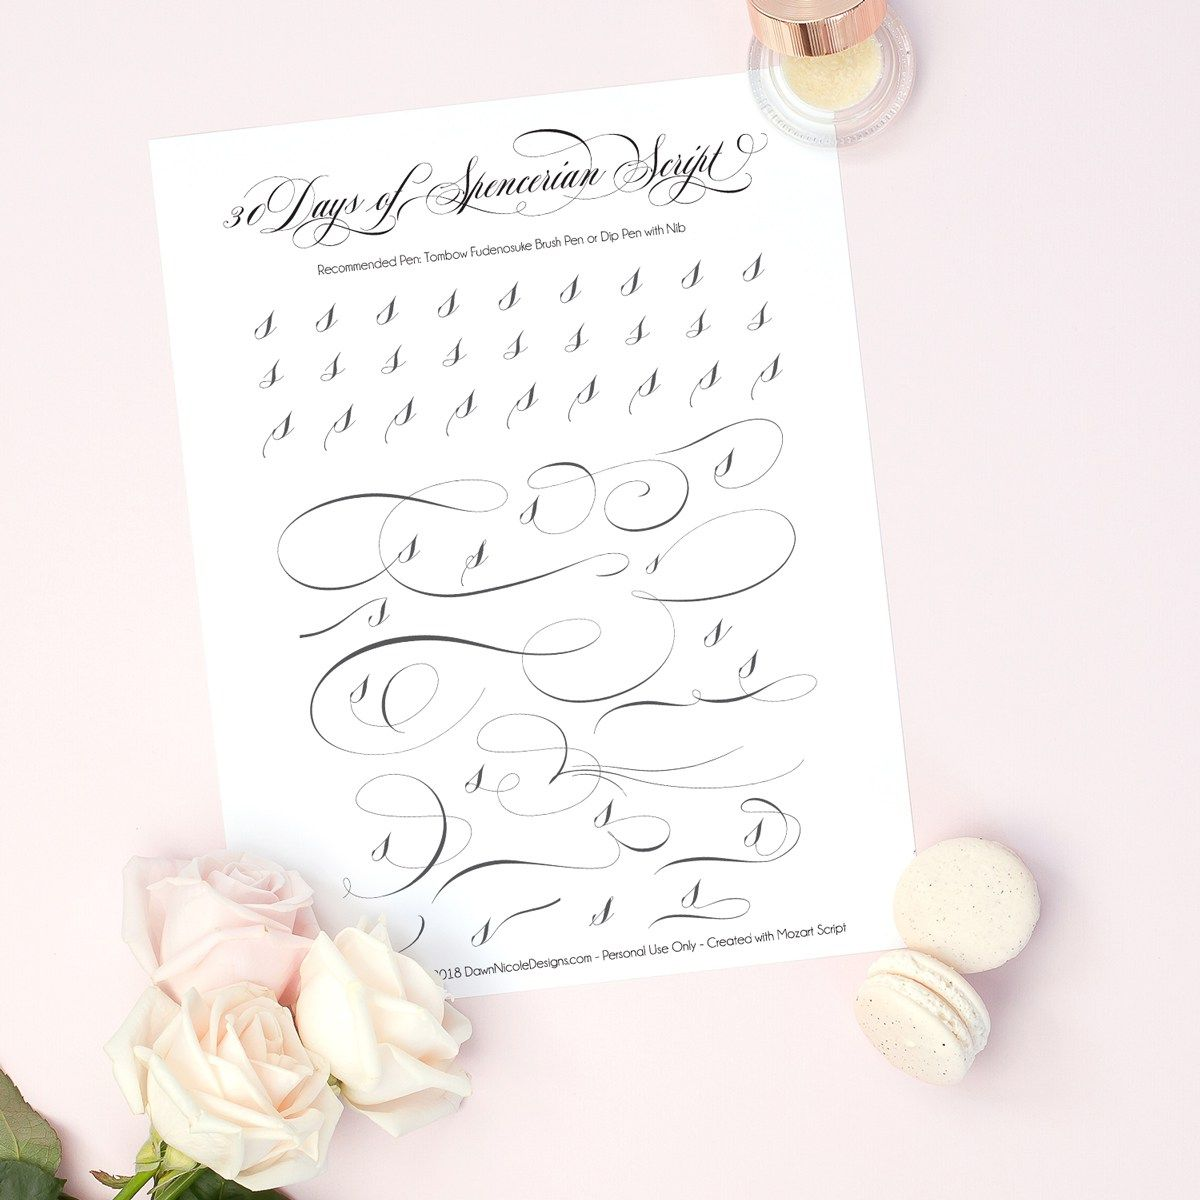 Spencerian Script Style Letter S Worksheets With Images